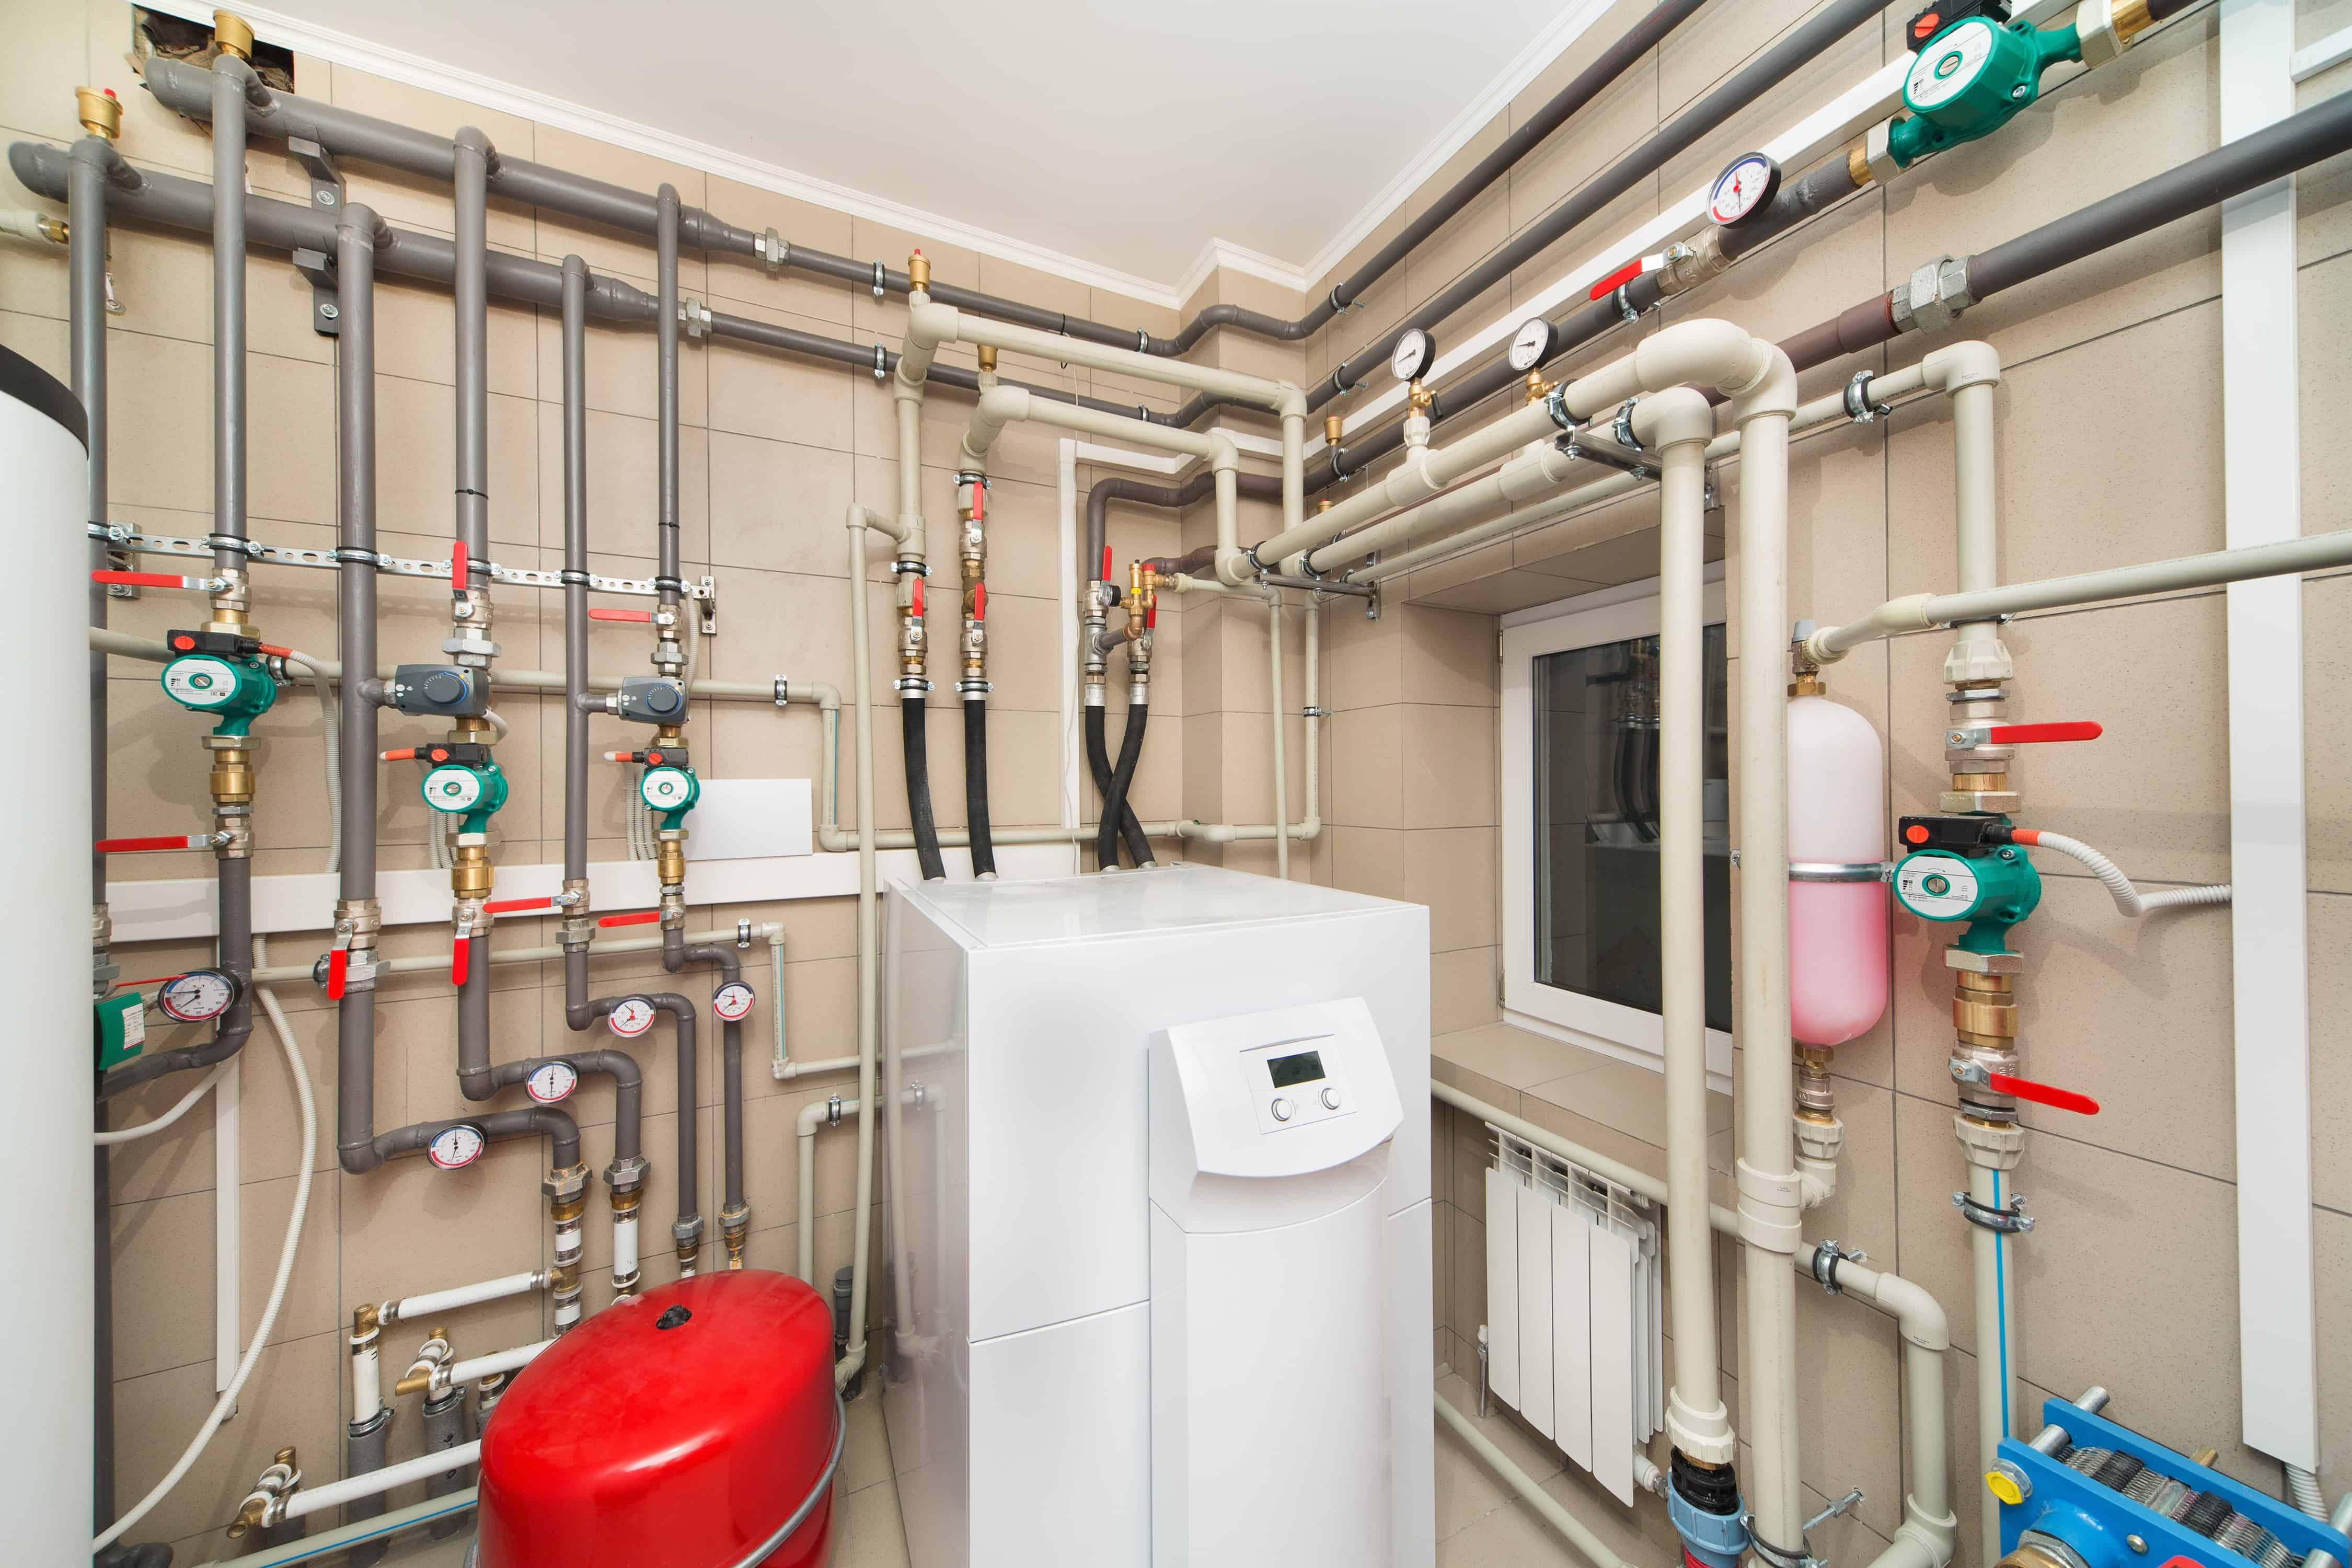 hot water system room in apartment building